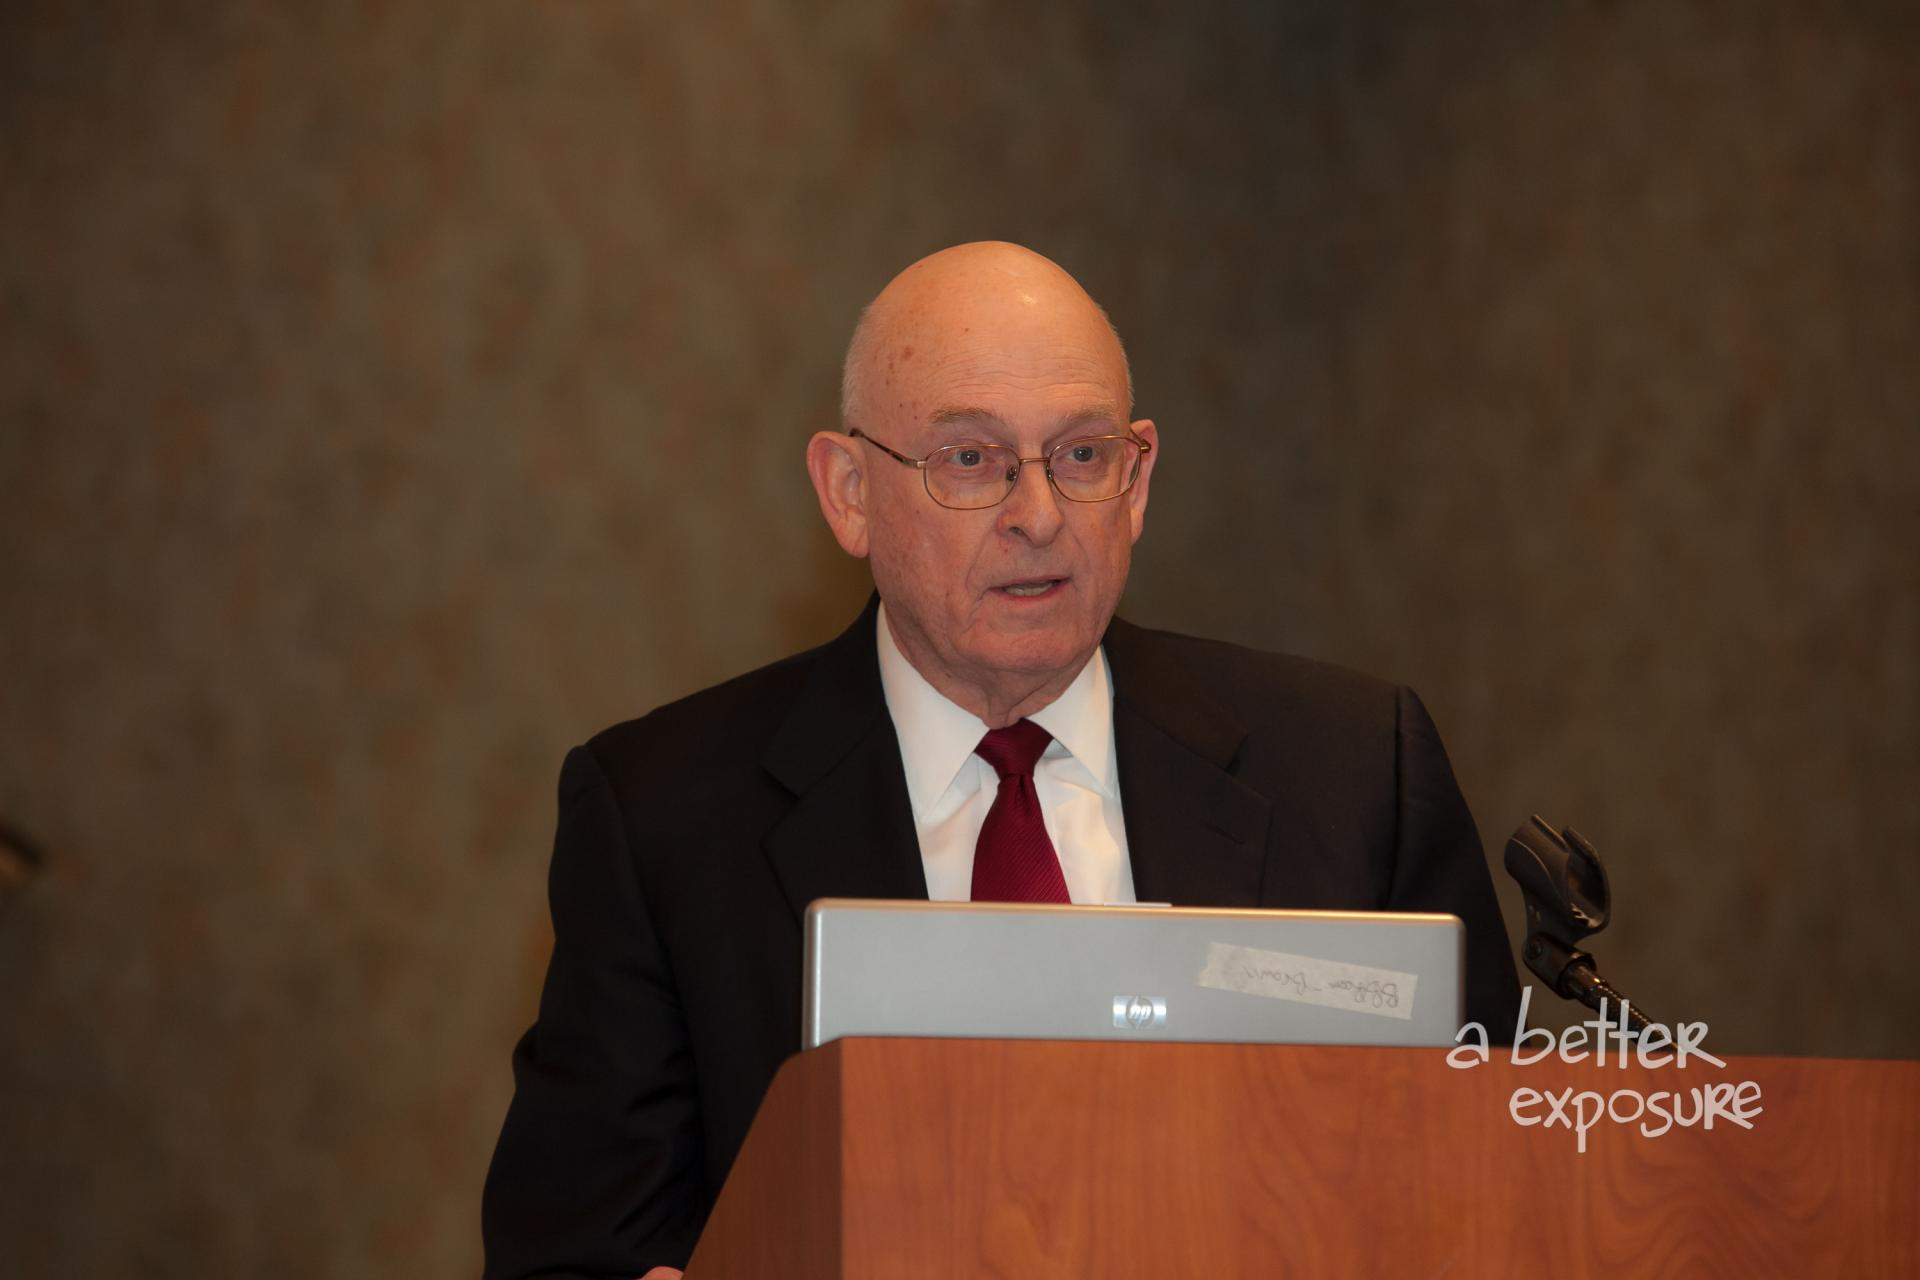 Lawrence Gibbs, former IRS Commissioner, delivers the keynote address